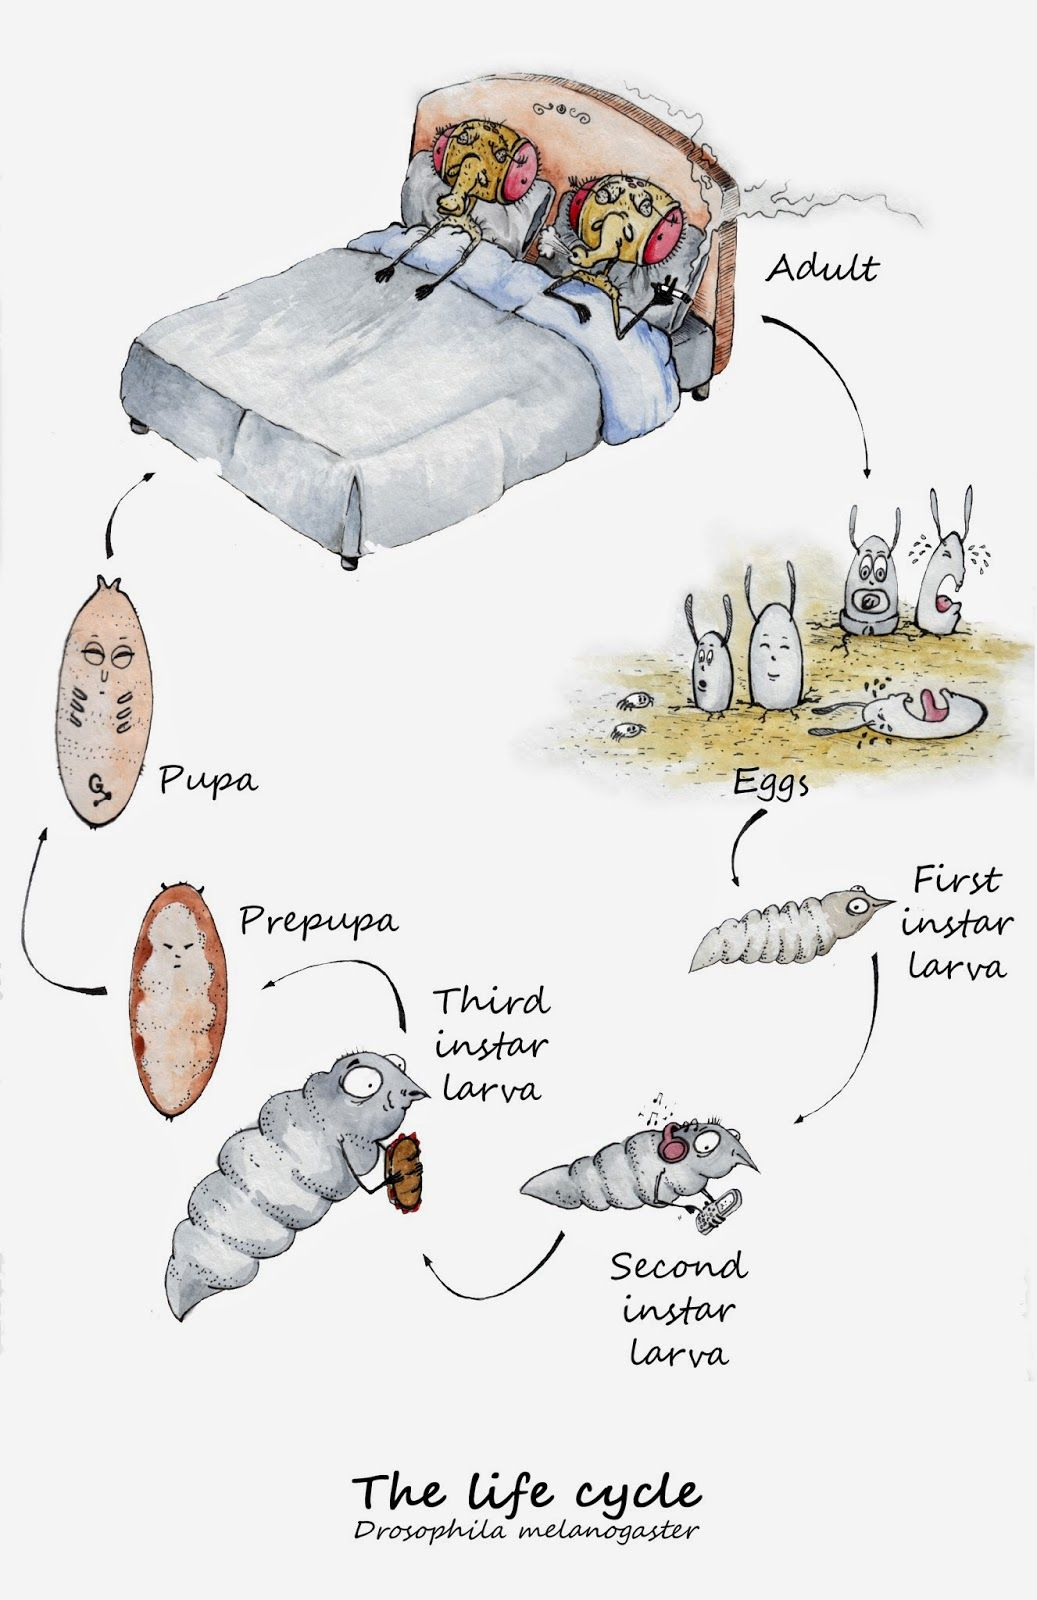 drosophila drawings the drosophila life cycle drosophila  drosophila drawings the drosophila life cycle